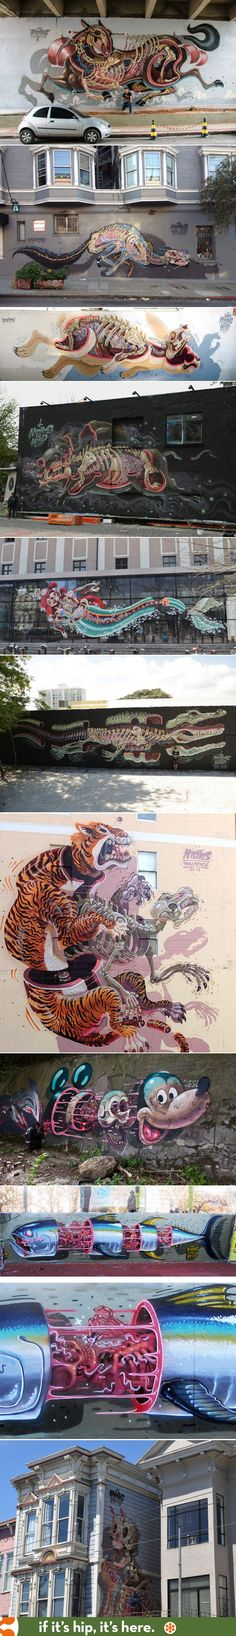 A look at the work of street Artist NYCHOS. Lots more plus videos at the link.